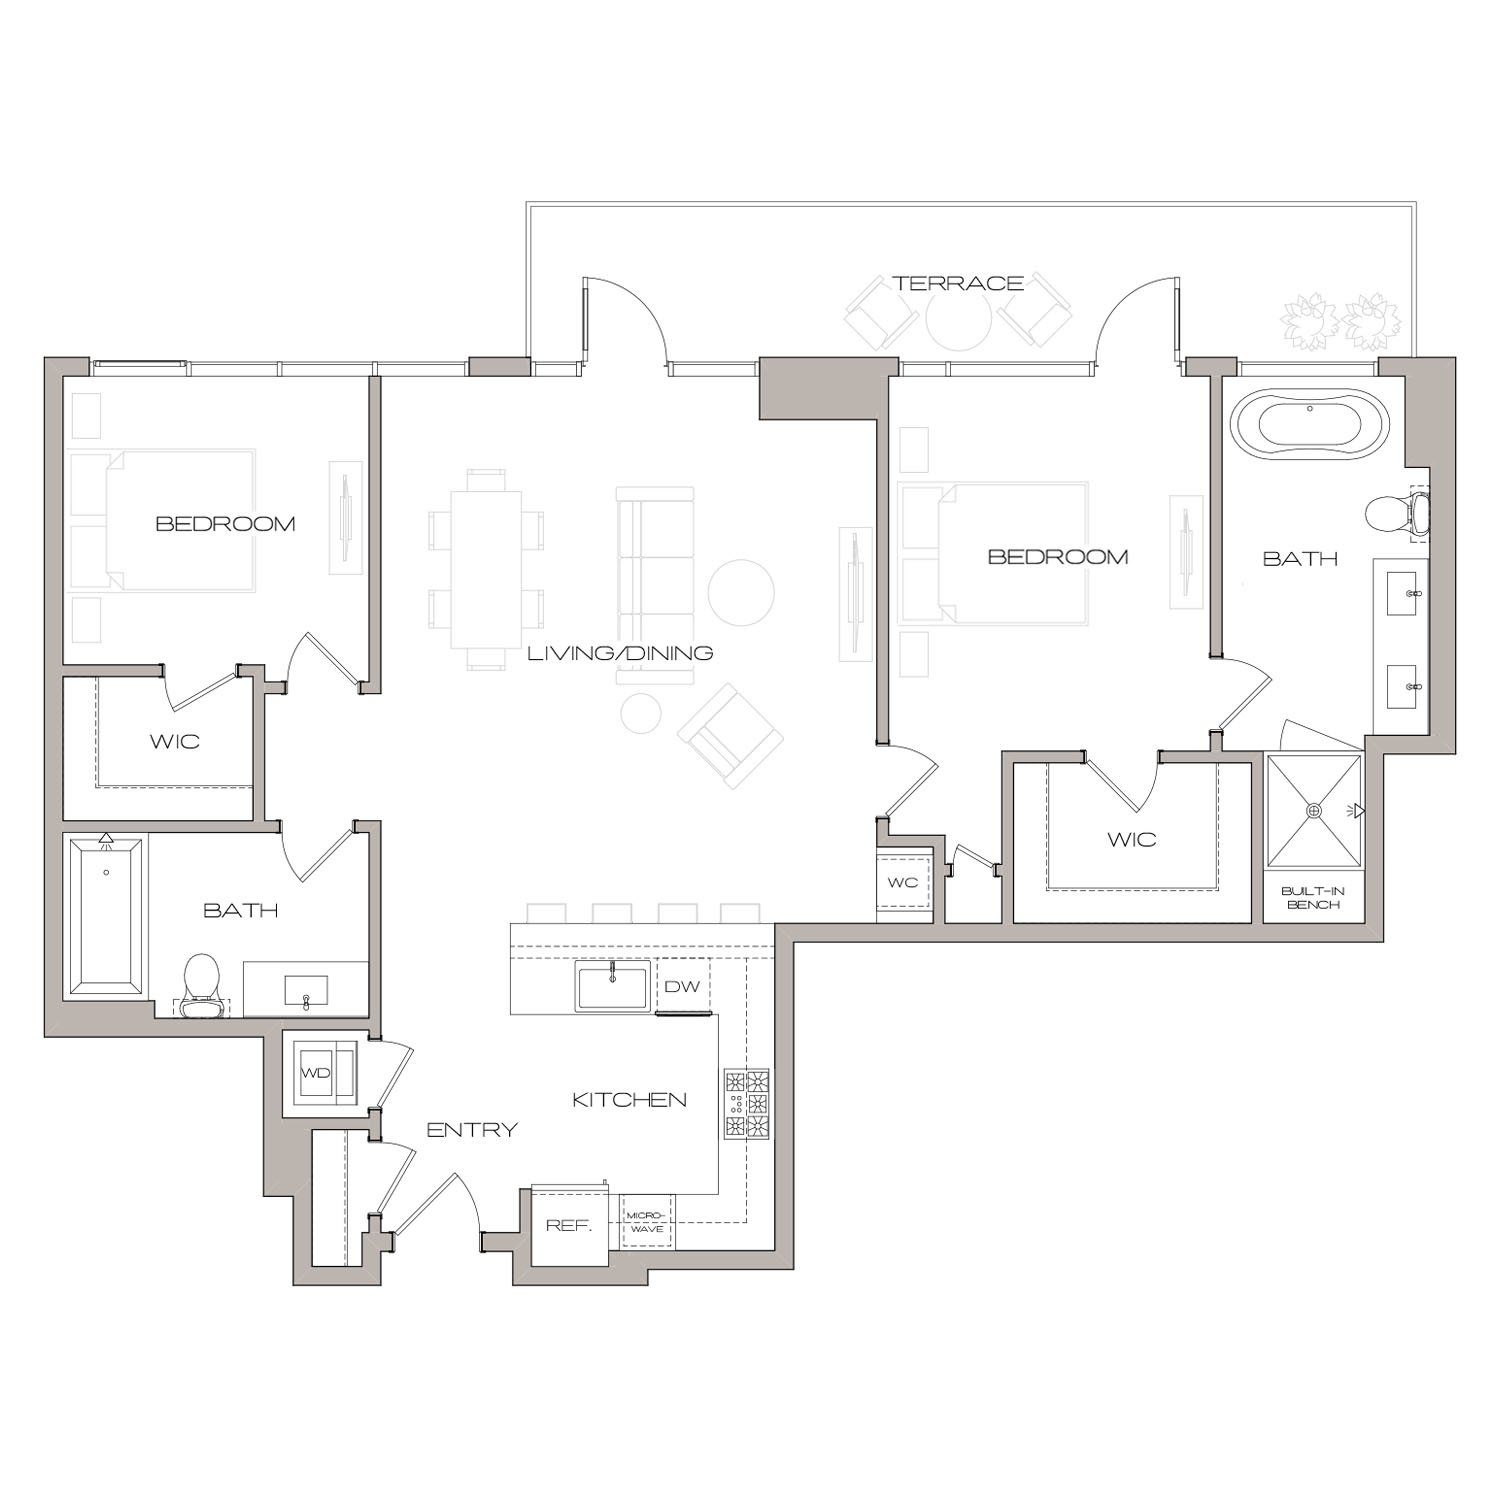 P H 3 floor plan diagram. Penthouse apartment with two bedrooms, two bathrooms, an open kitchen living and dining area, a terrace, and a washer dryer.